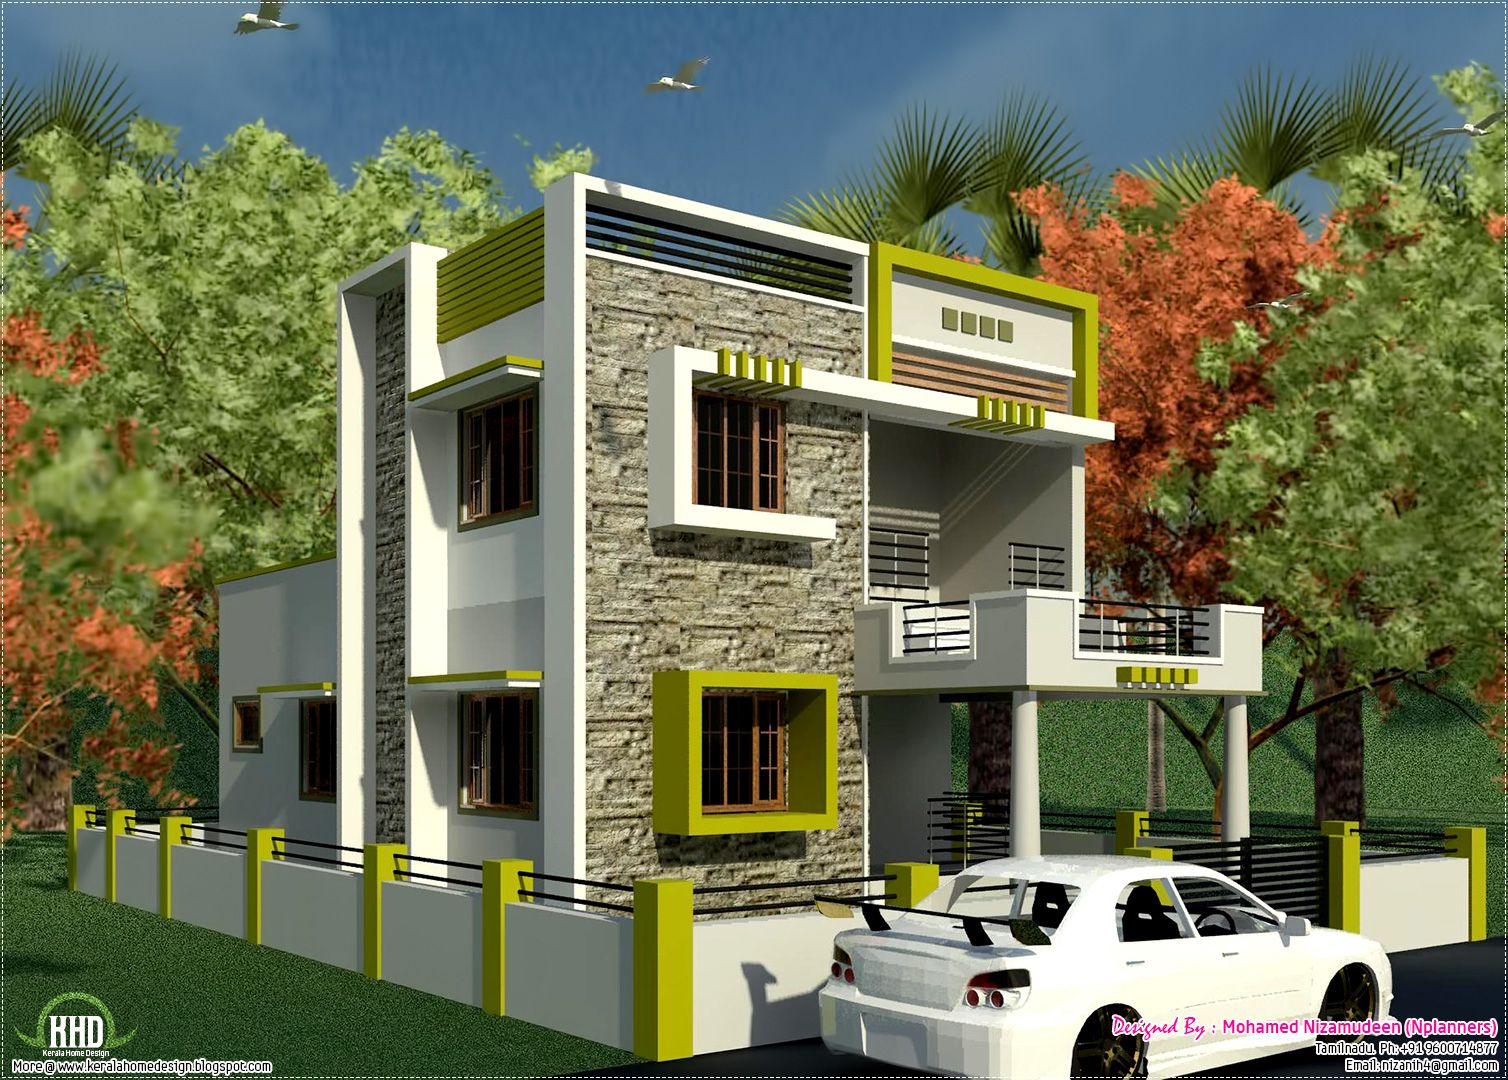 Small House With Car Park Design Tobfav Com House Design Pictures Small House Exteriors House Outside Design